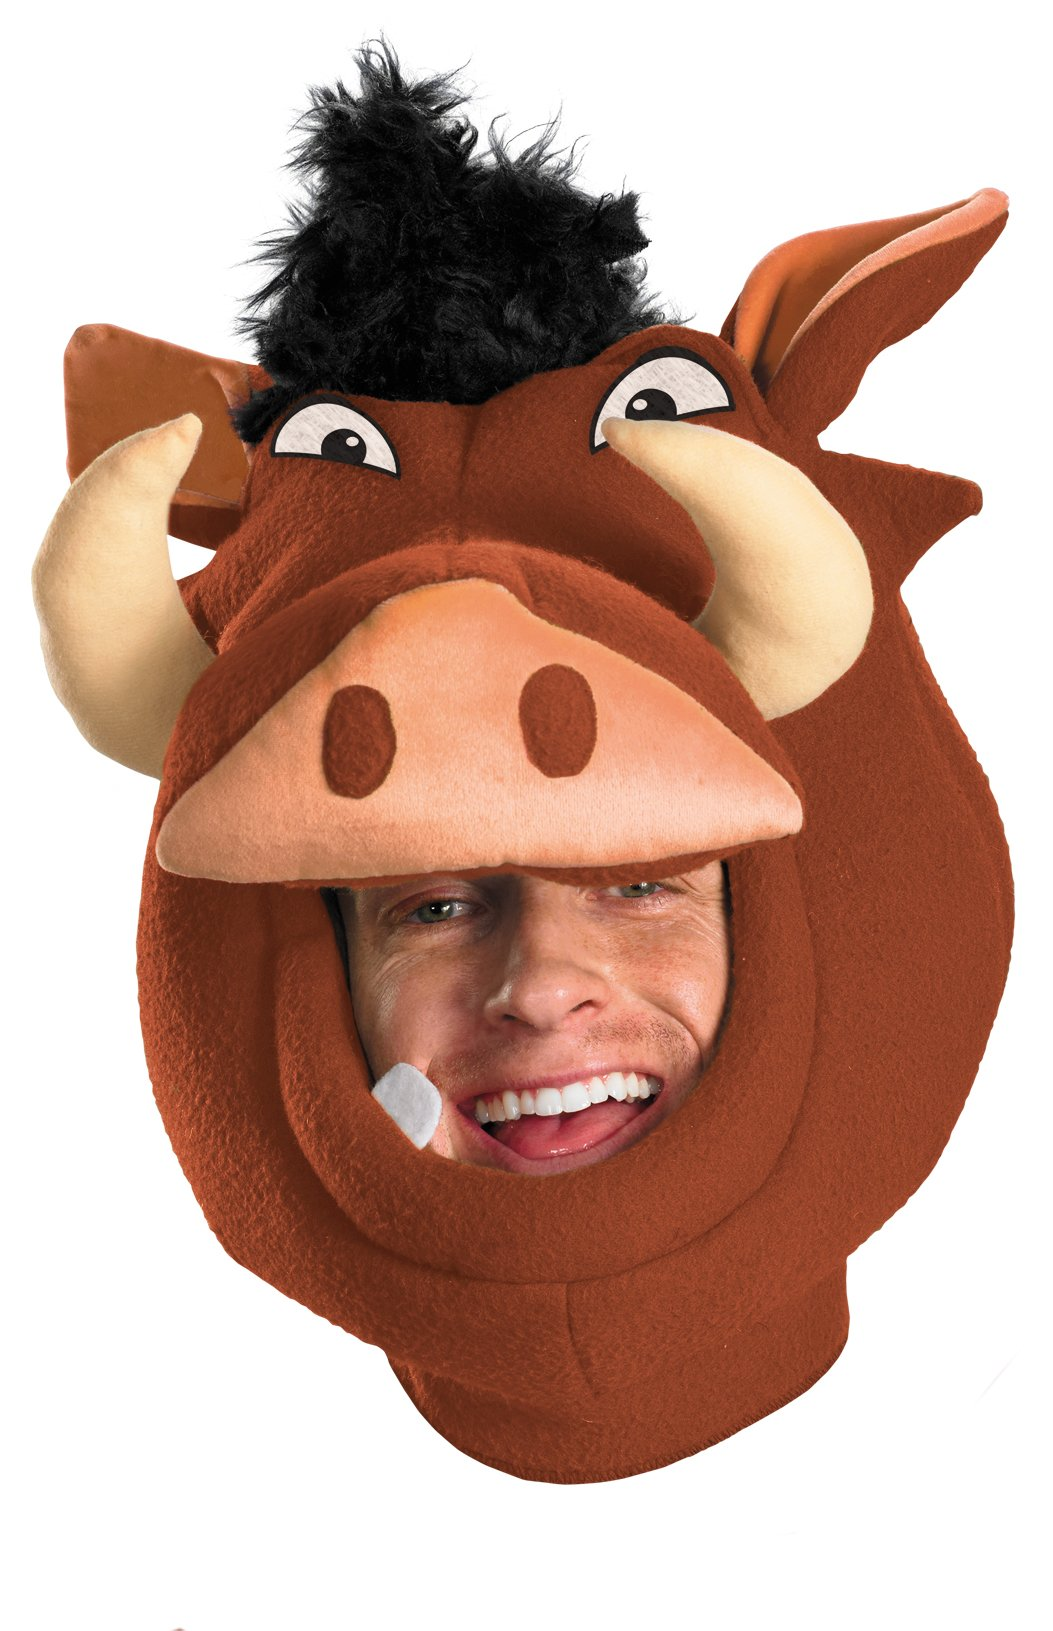 The Lion King - Pumba Headpiece (Adult)